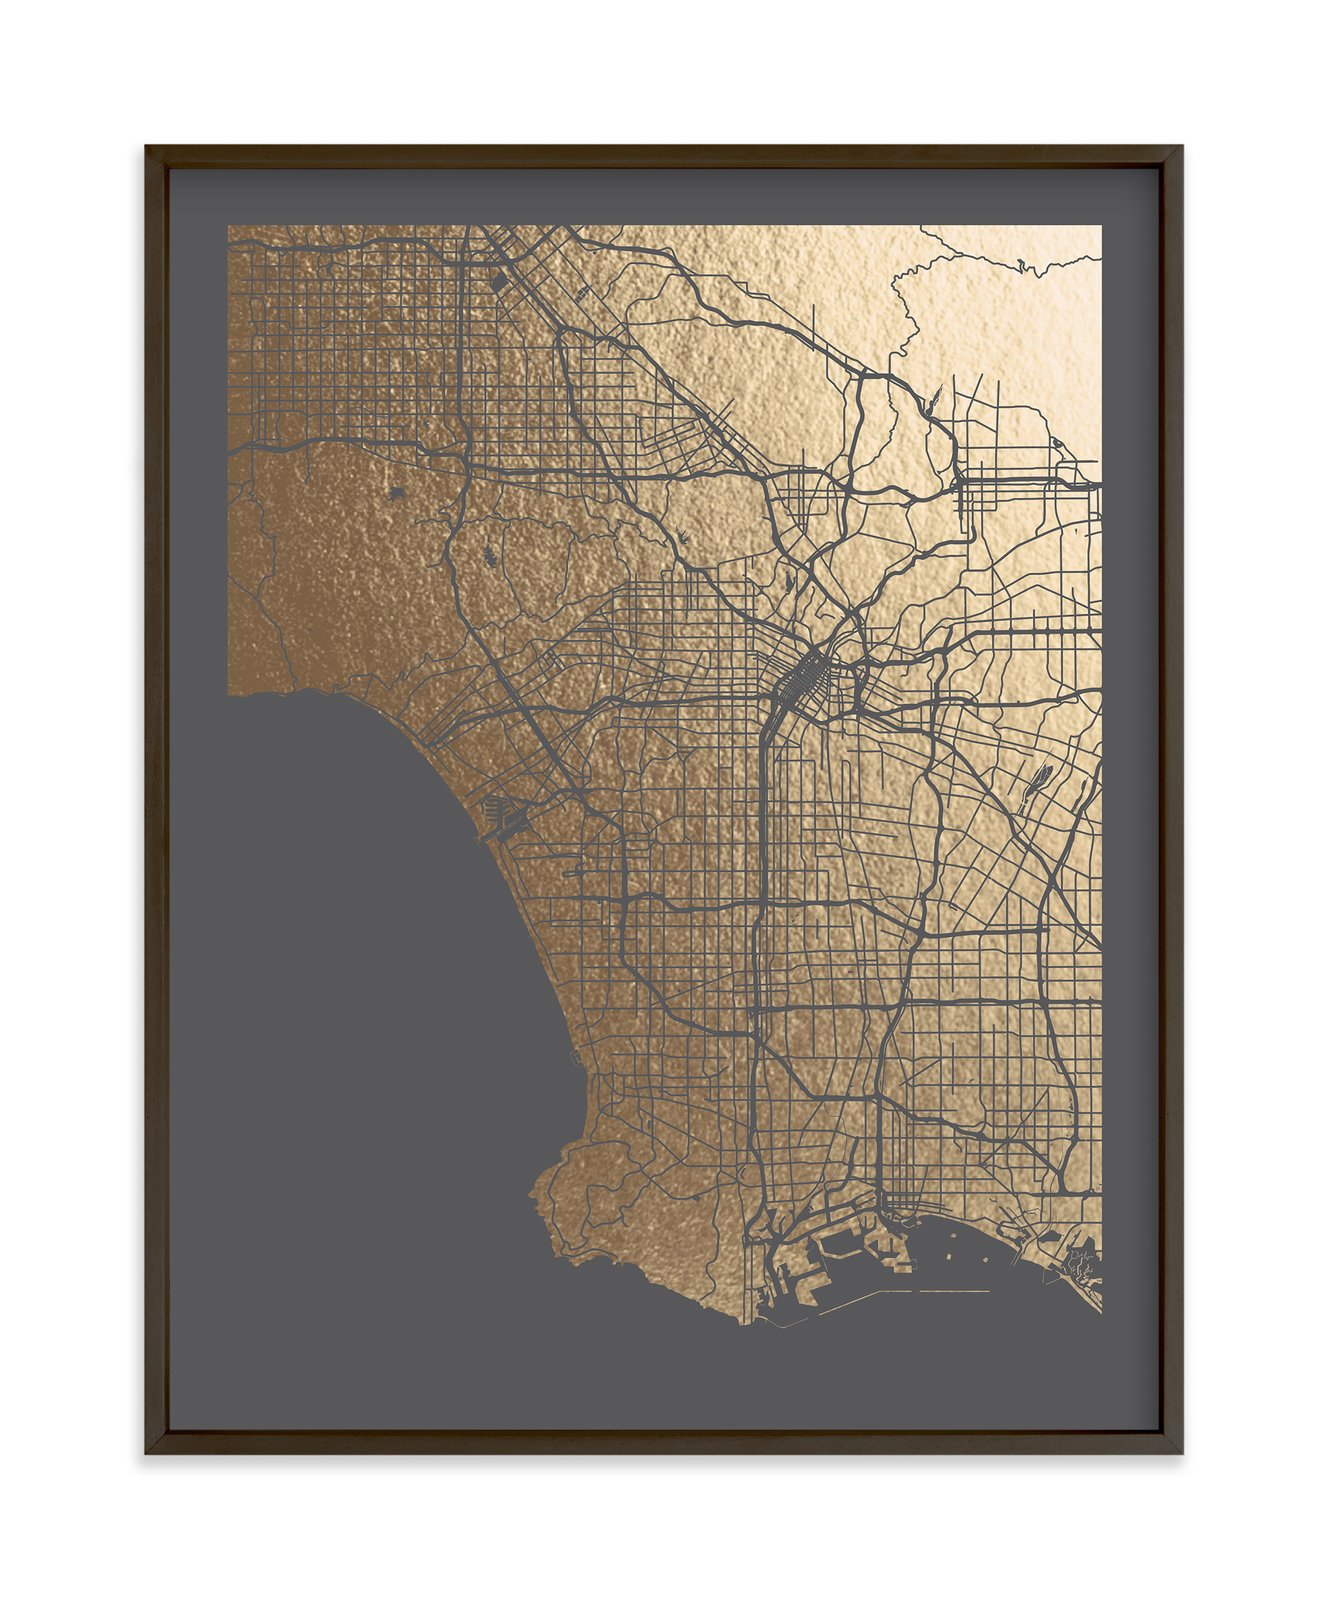 Los Angeles Map foil art print by Alex Elko Design  Photo 2 of 7 in Top 6 Online Sources to Buy Budget-Friendly Artwork